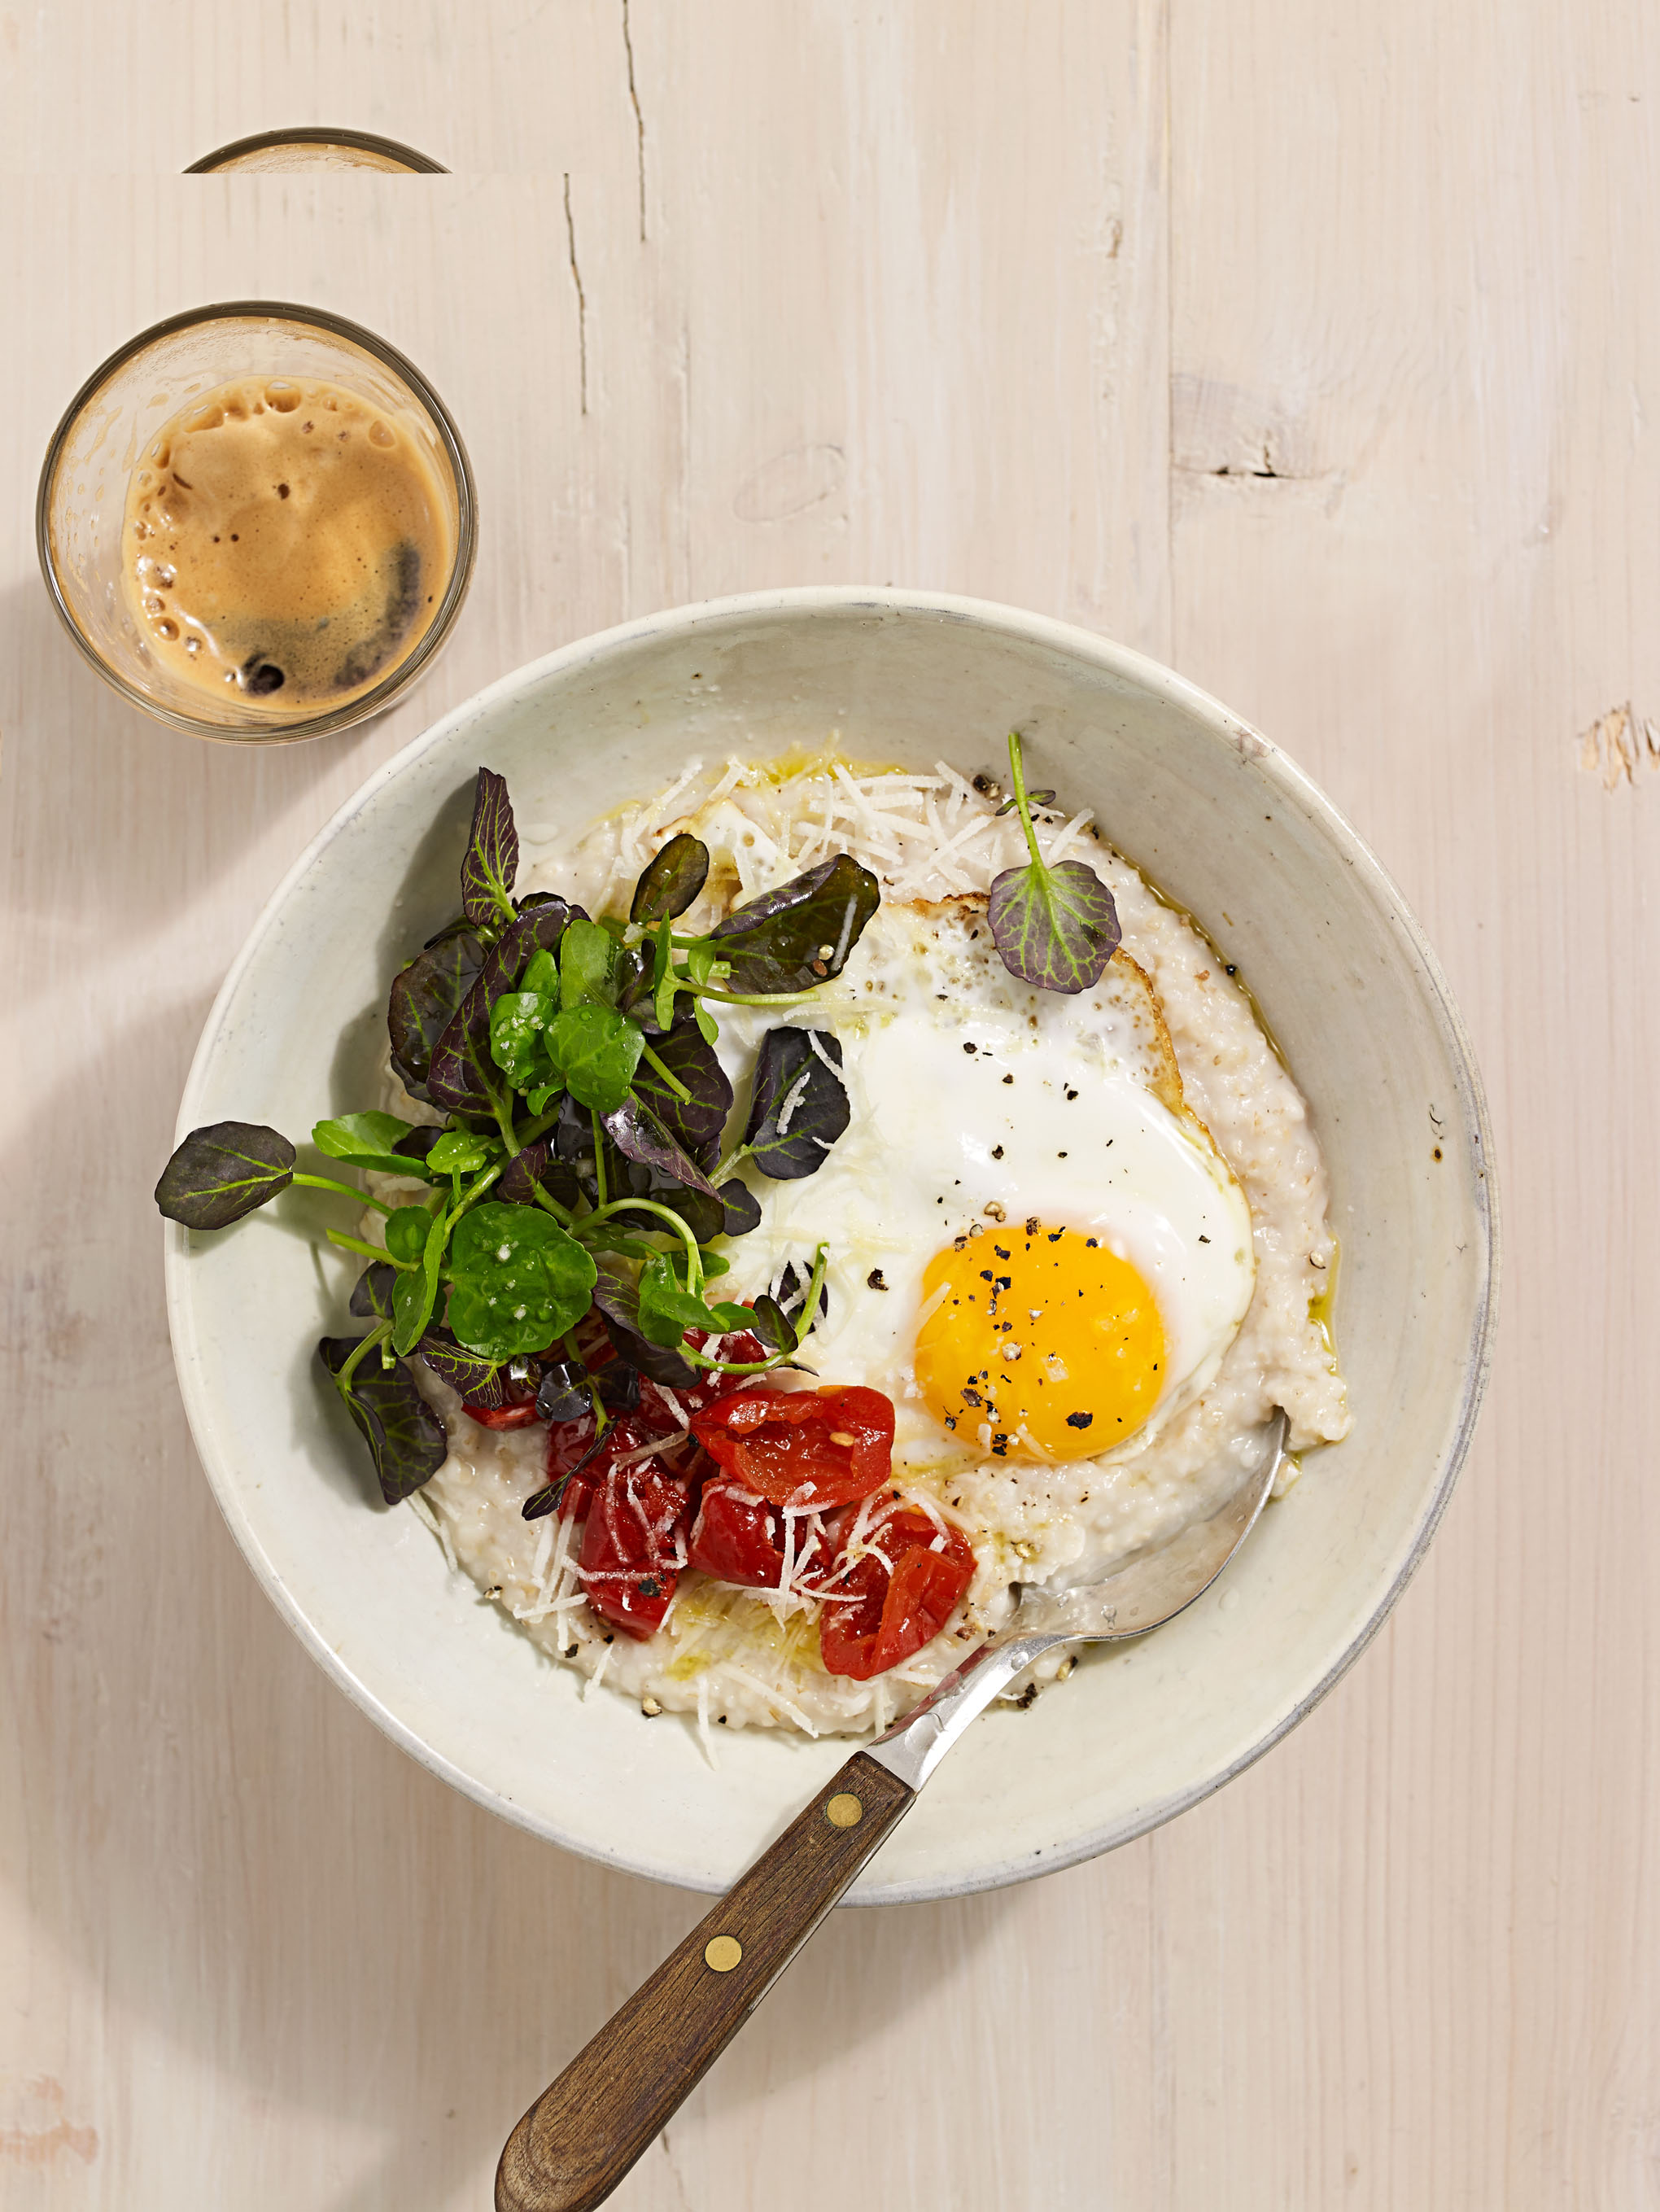 creamy parmesan oats with watercress